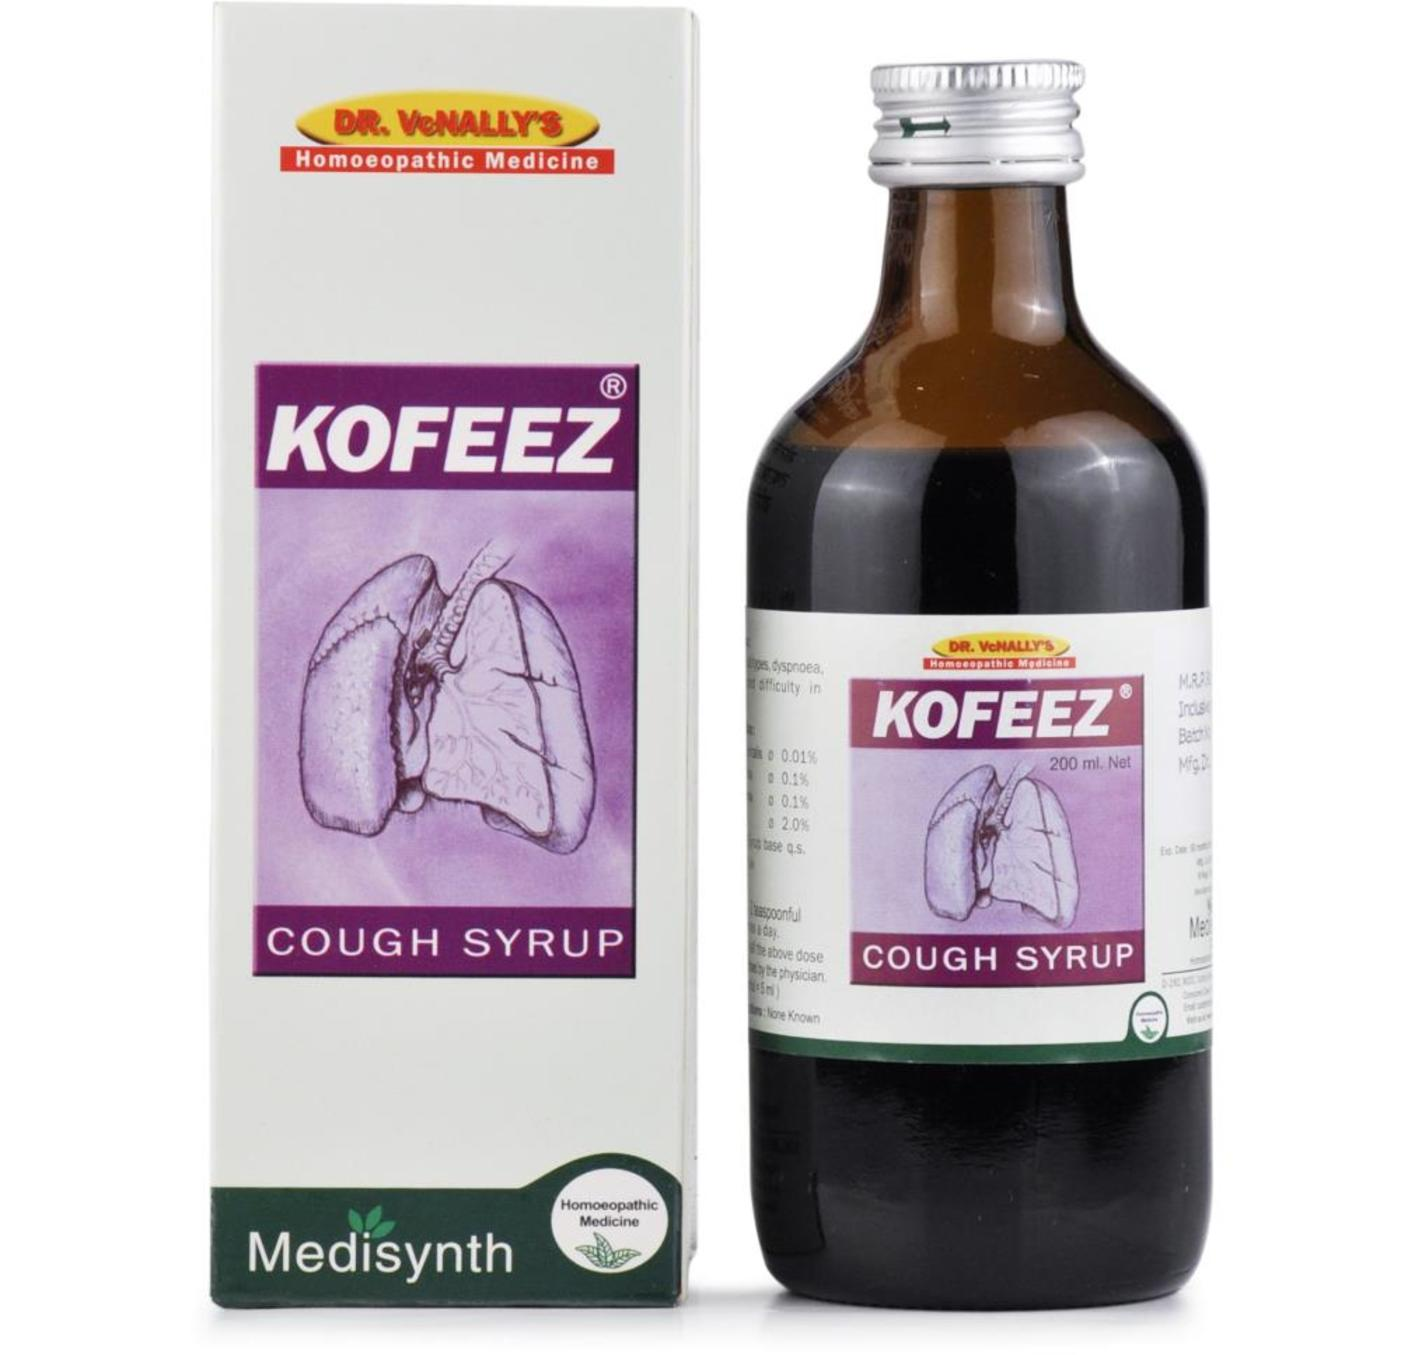 Medisynth Kofeez Cough Syrup Homeopathic Medicine style=